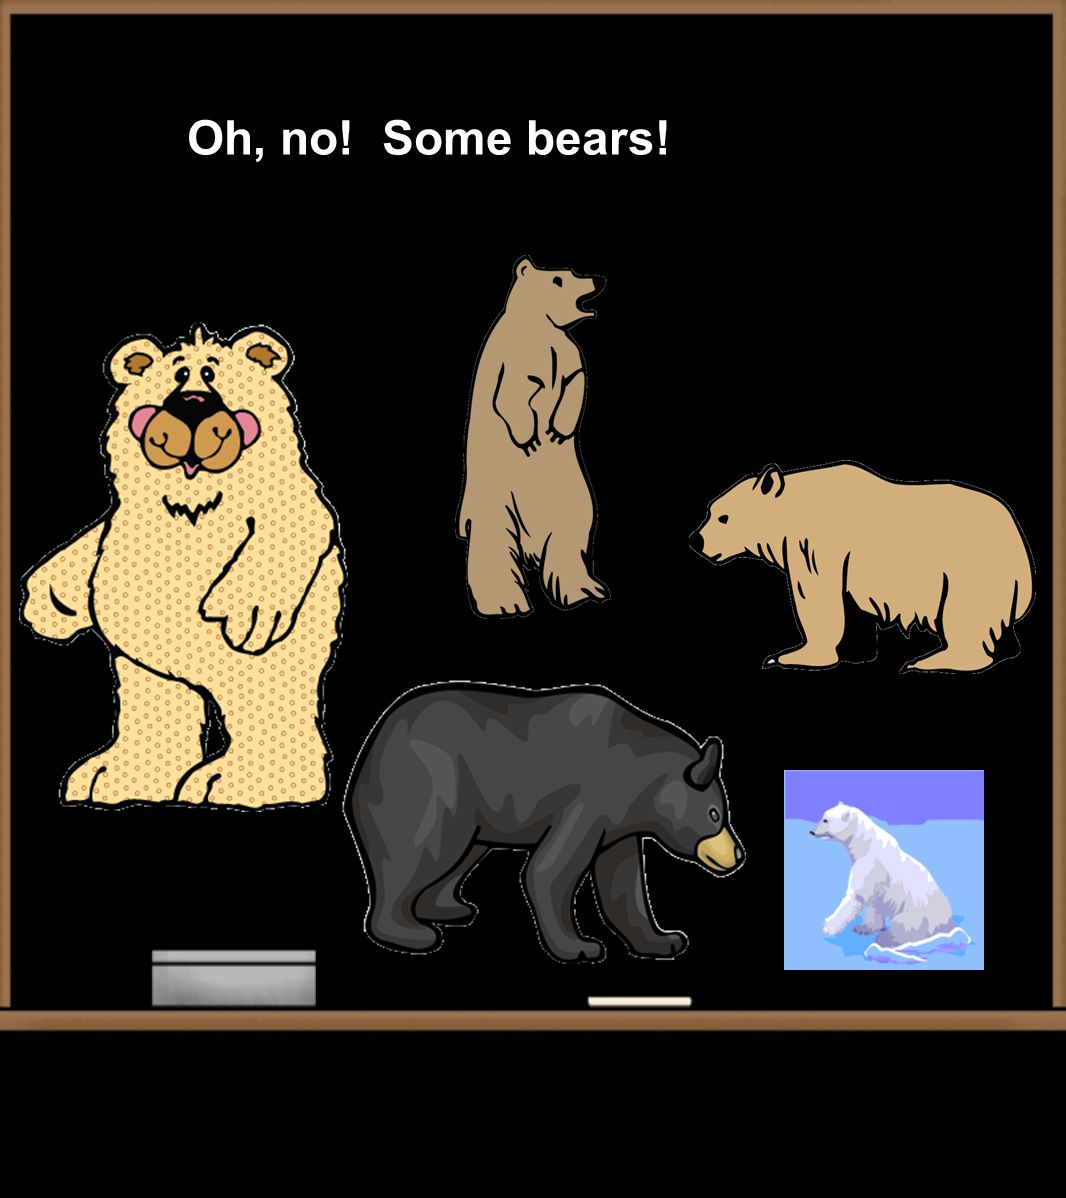 Oh, no! Some bears!